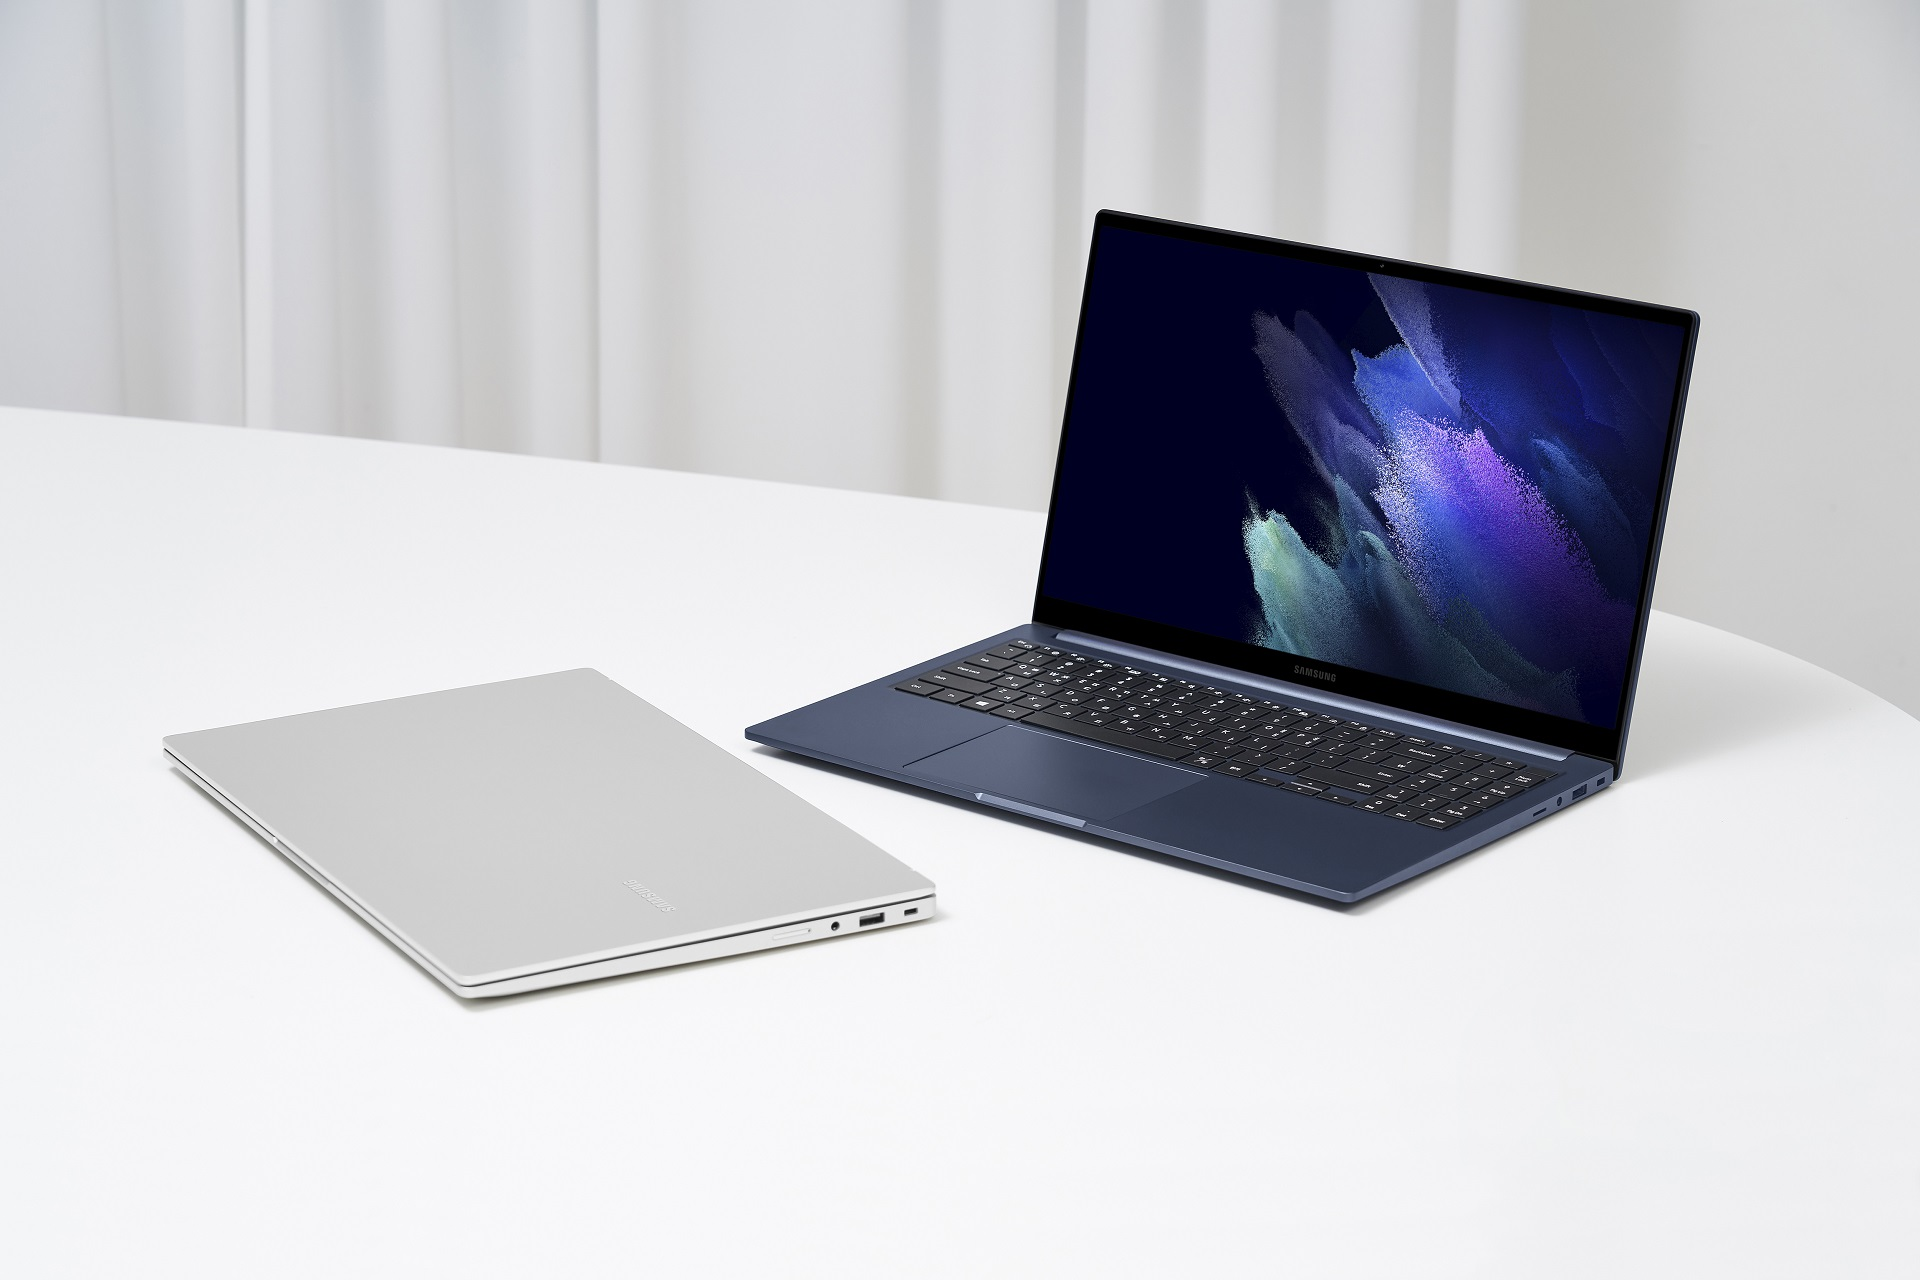 Samsung Galaxy Book 2021 laptop